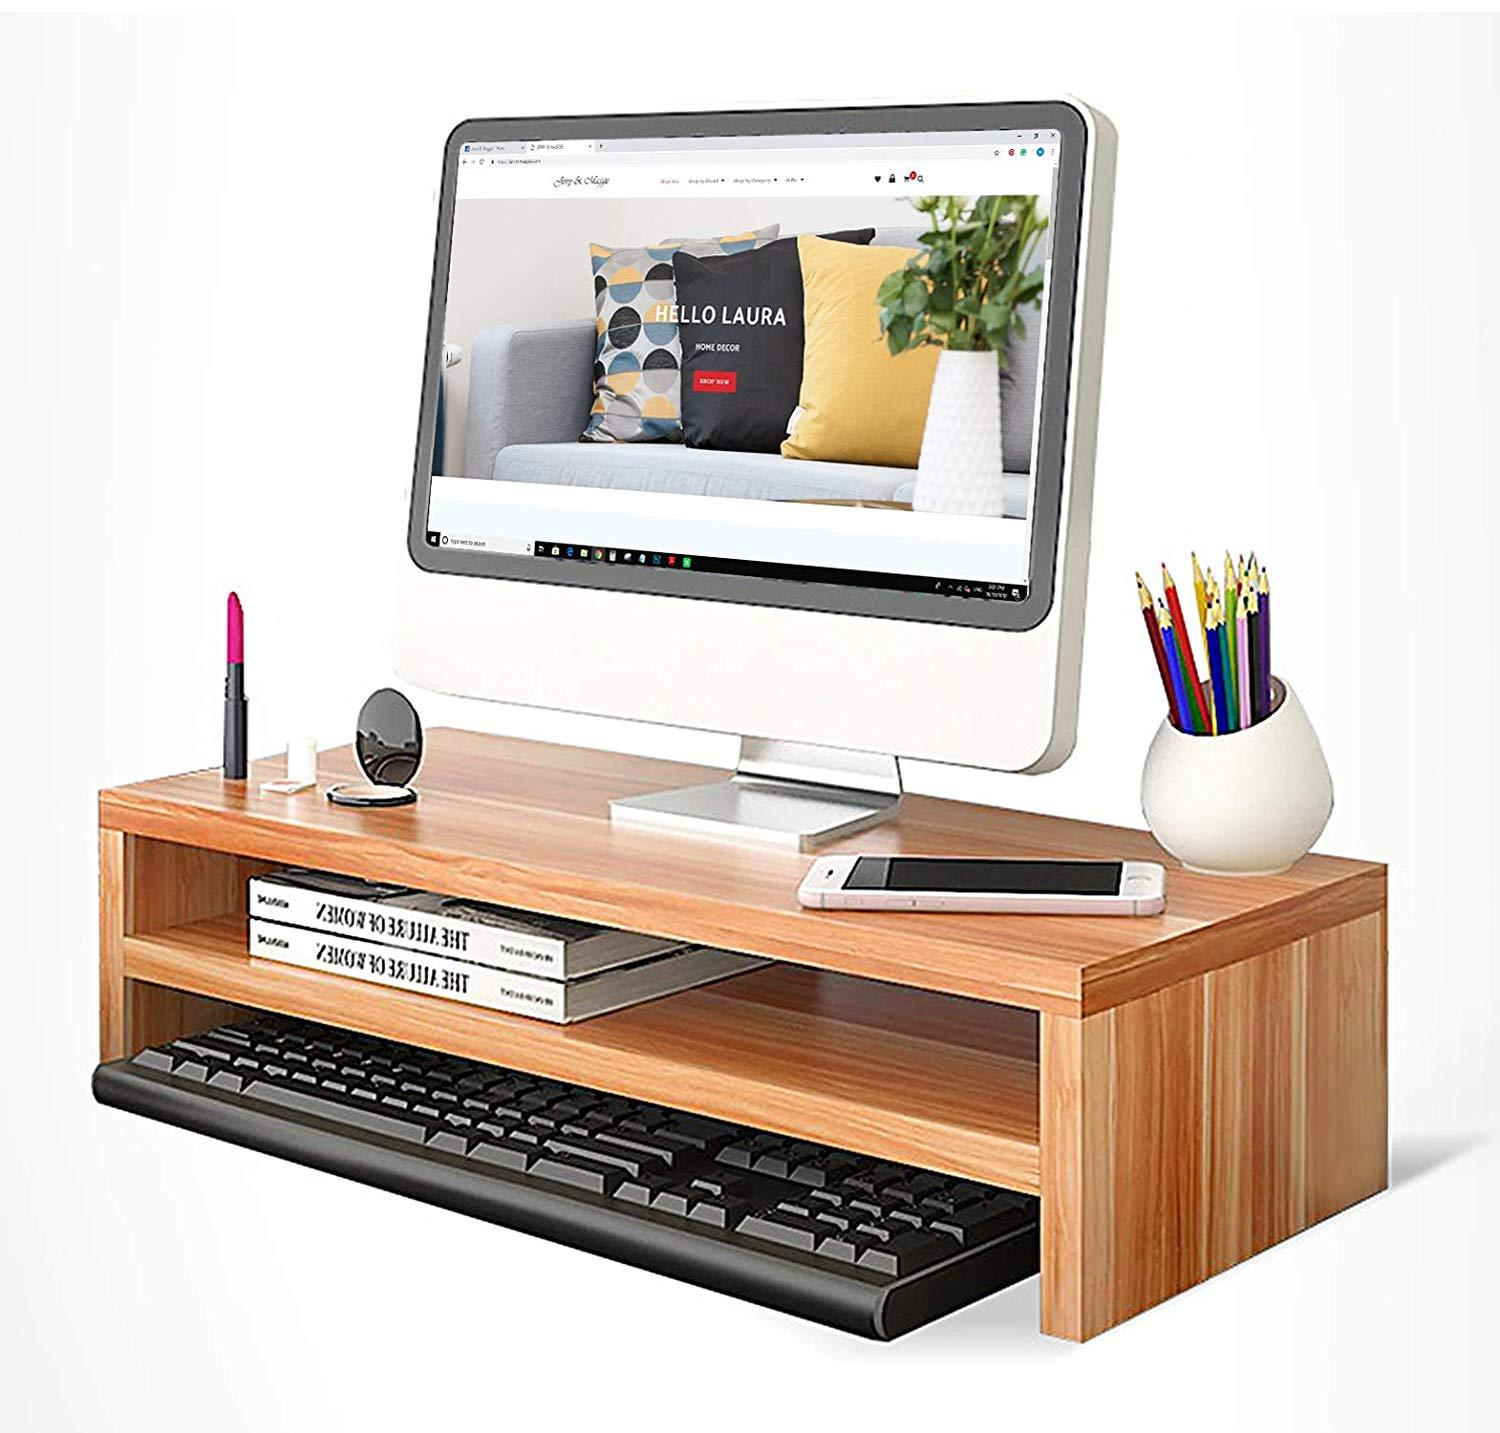 2 Tier Wooden Monitor Riser Ergonomic Stand with Keyboard Storage for Posture Correction